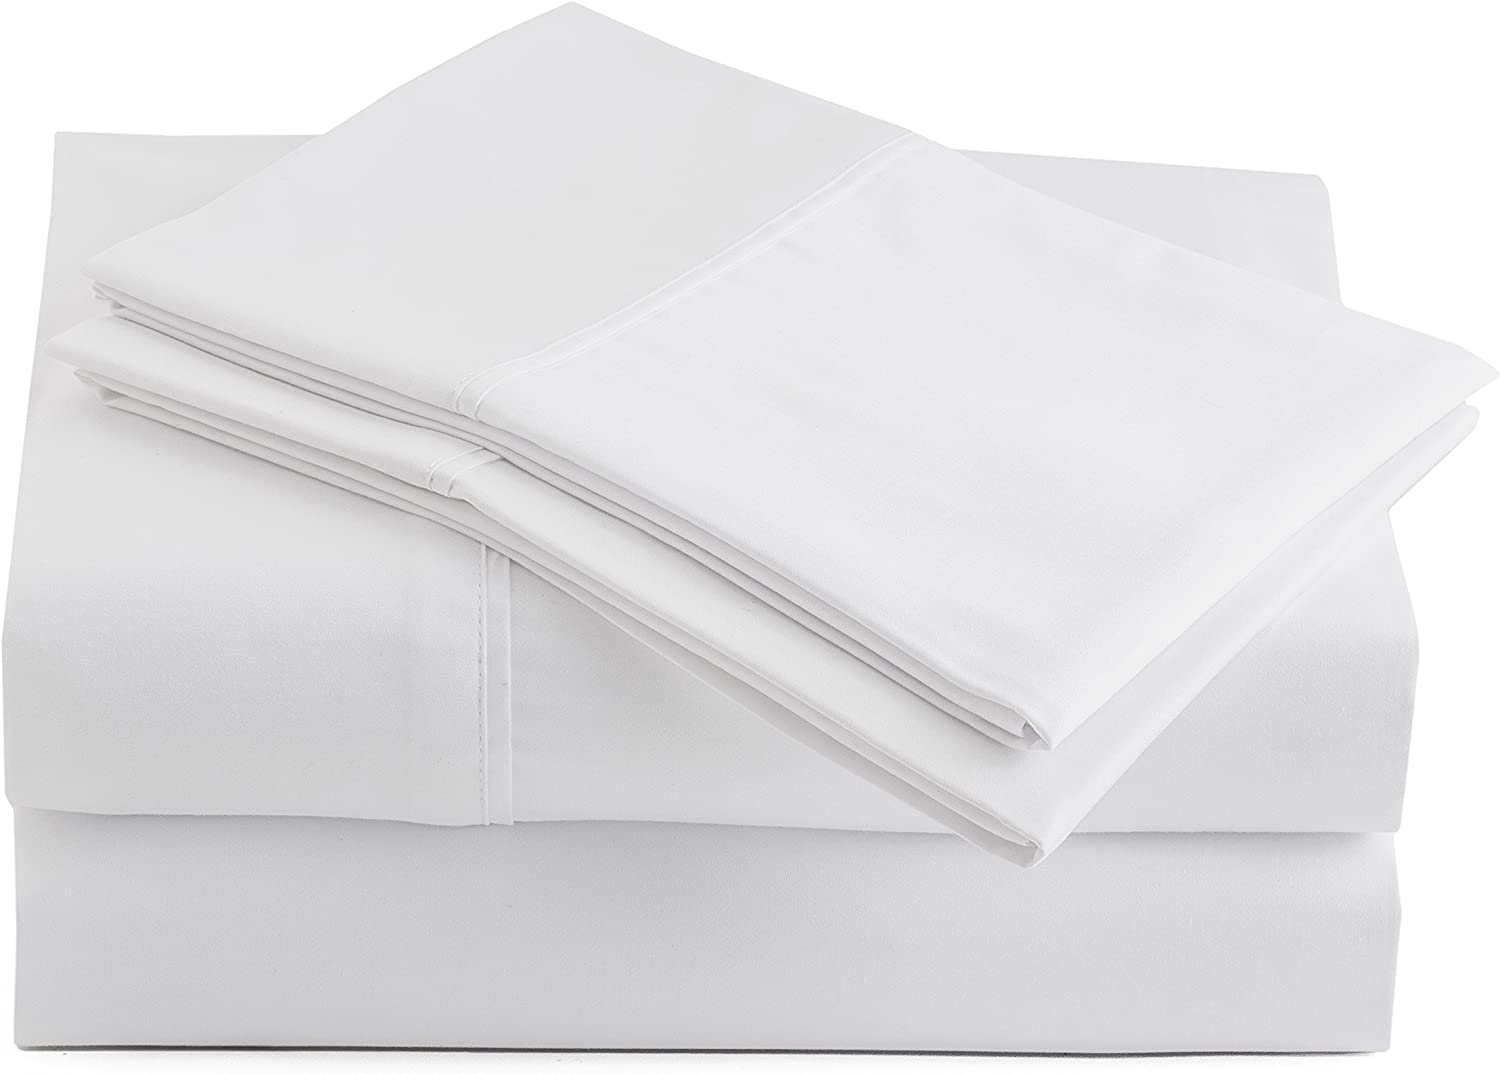 Amazon Com Peru Pima 415 Thread Count Percale 100 Peruvian Pima Cotton King Bed Sheet Set White Home Kitchen,Tiny House With Slide Out Walls